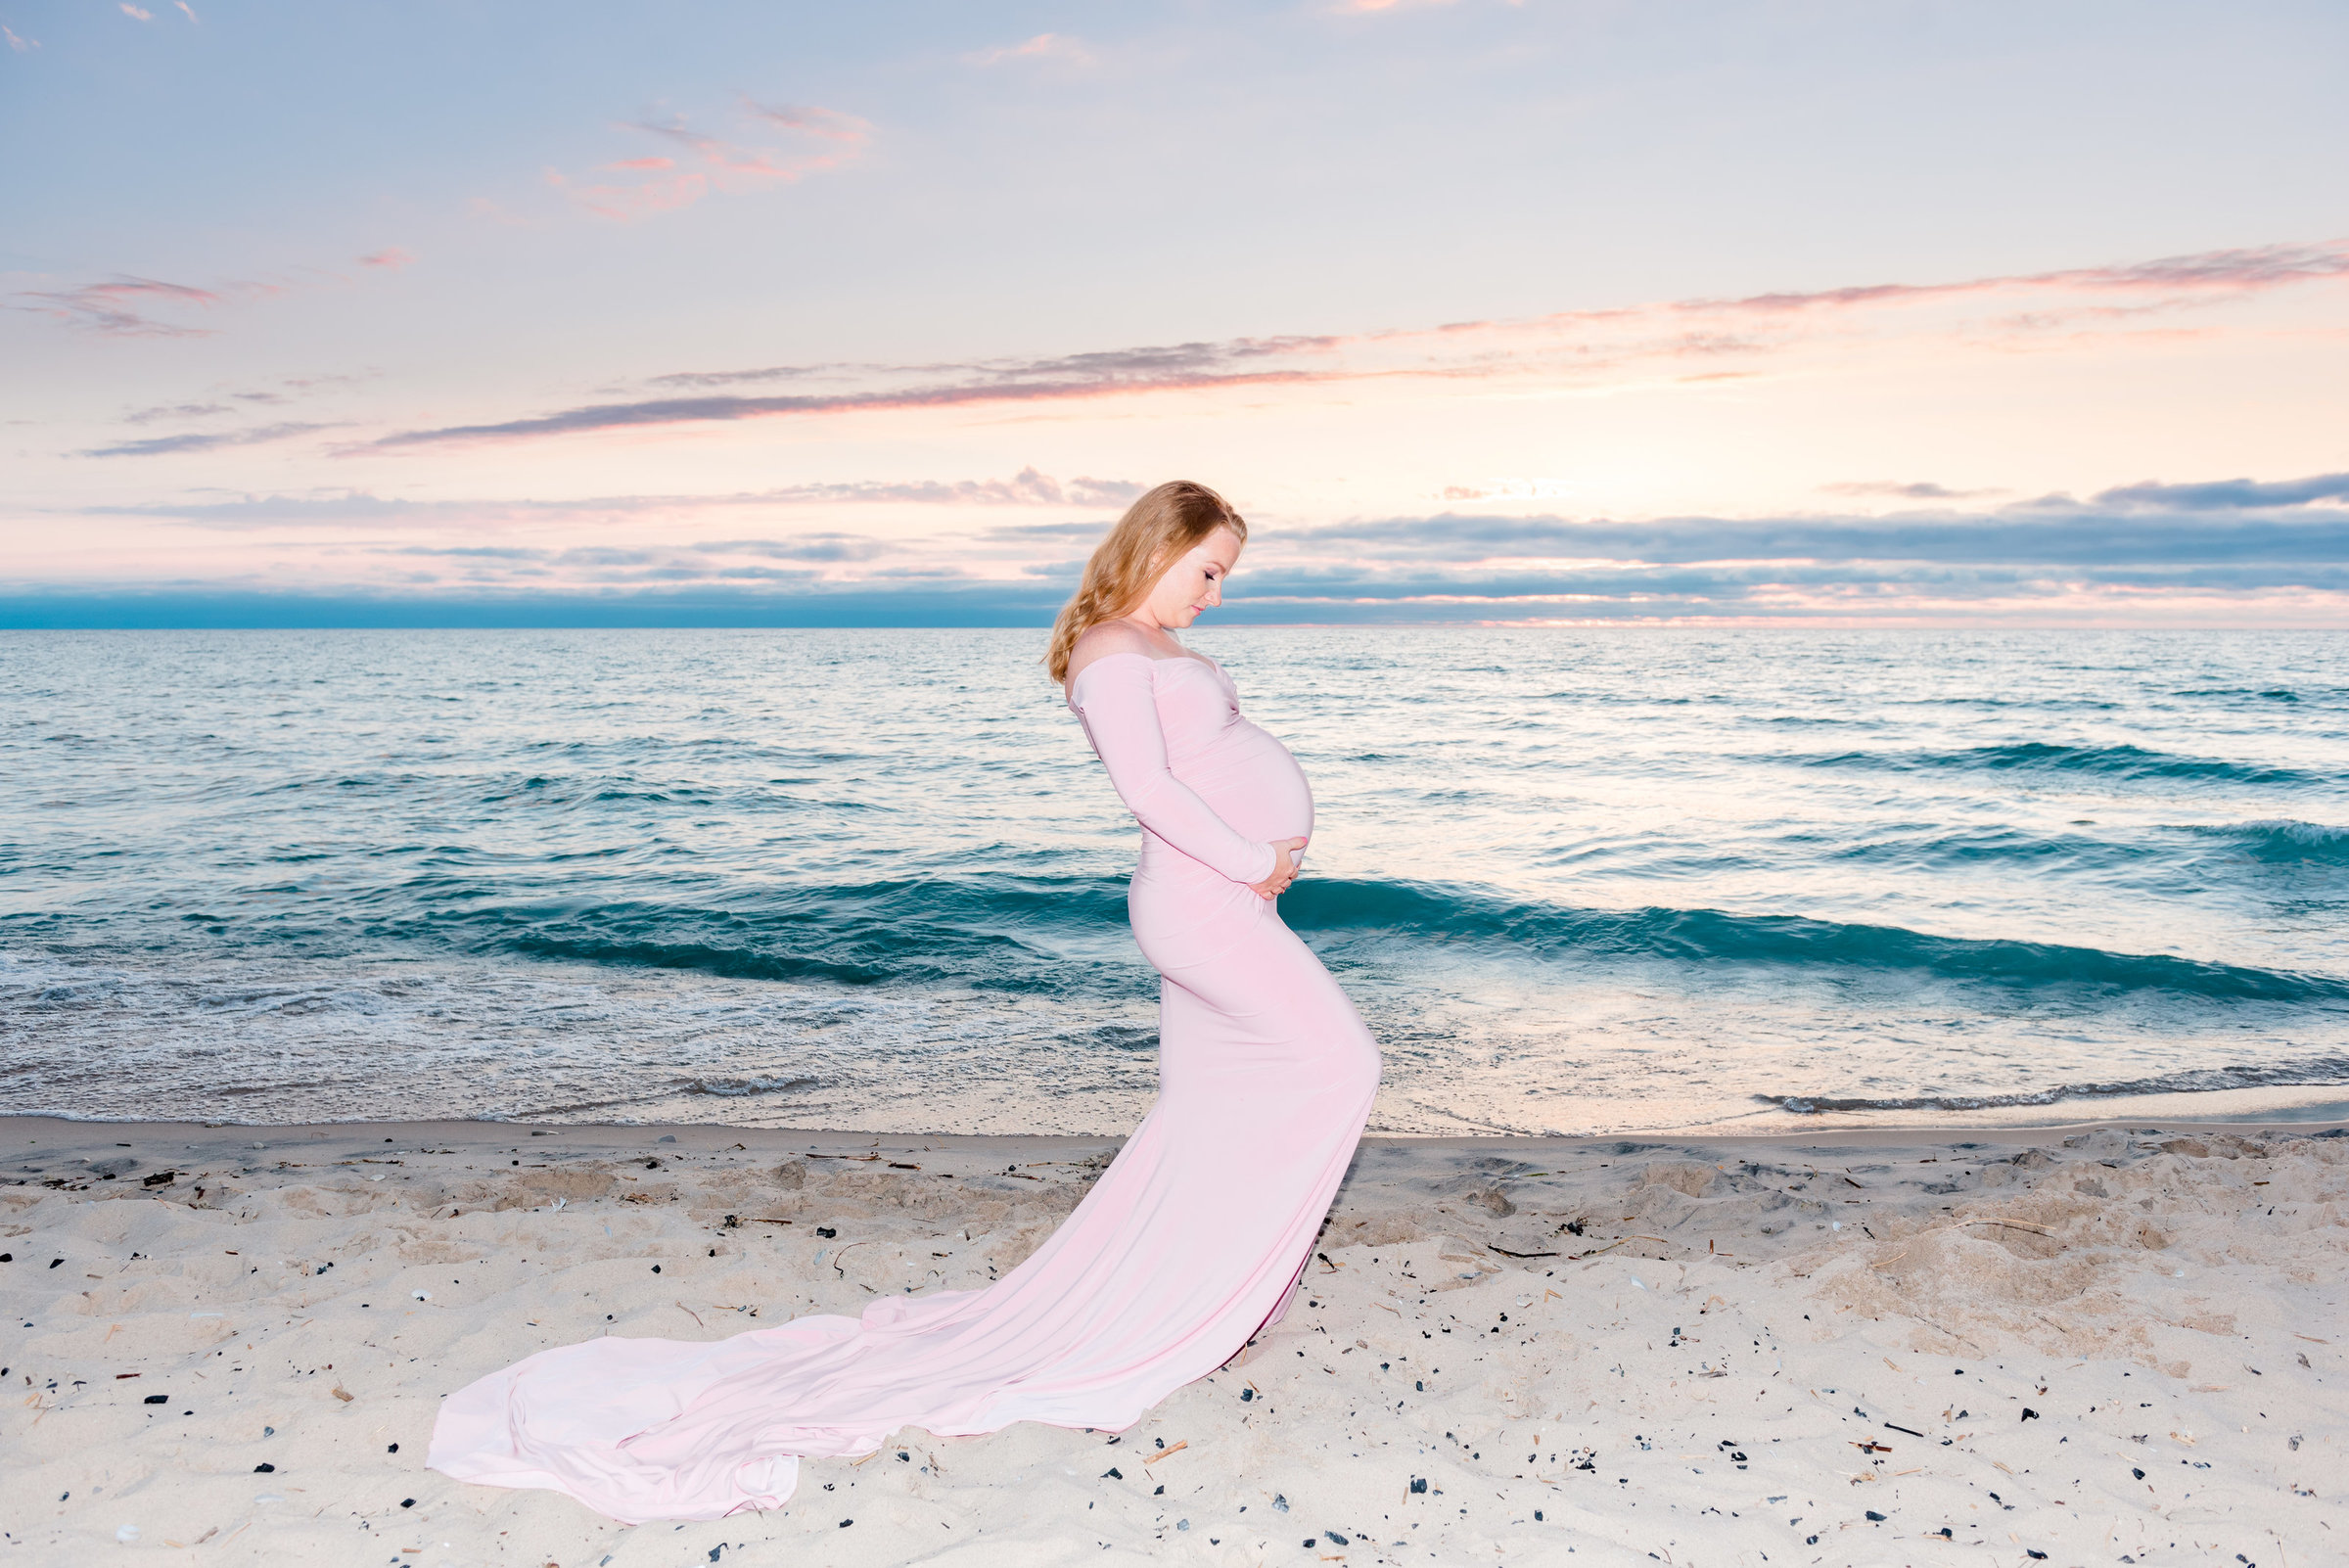 traverse-city-michigan-maternity-portrait-photographers-13